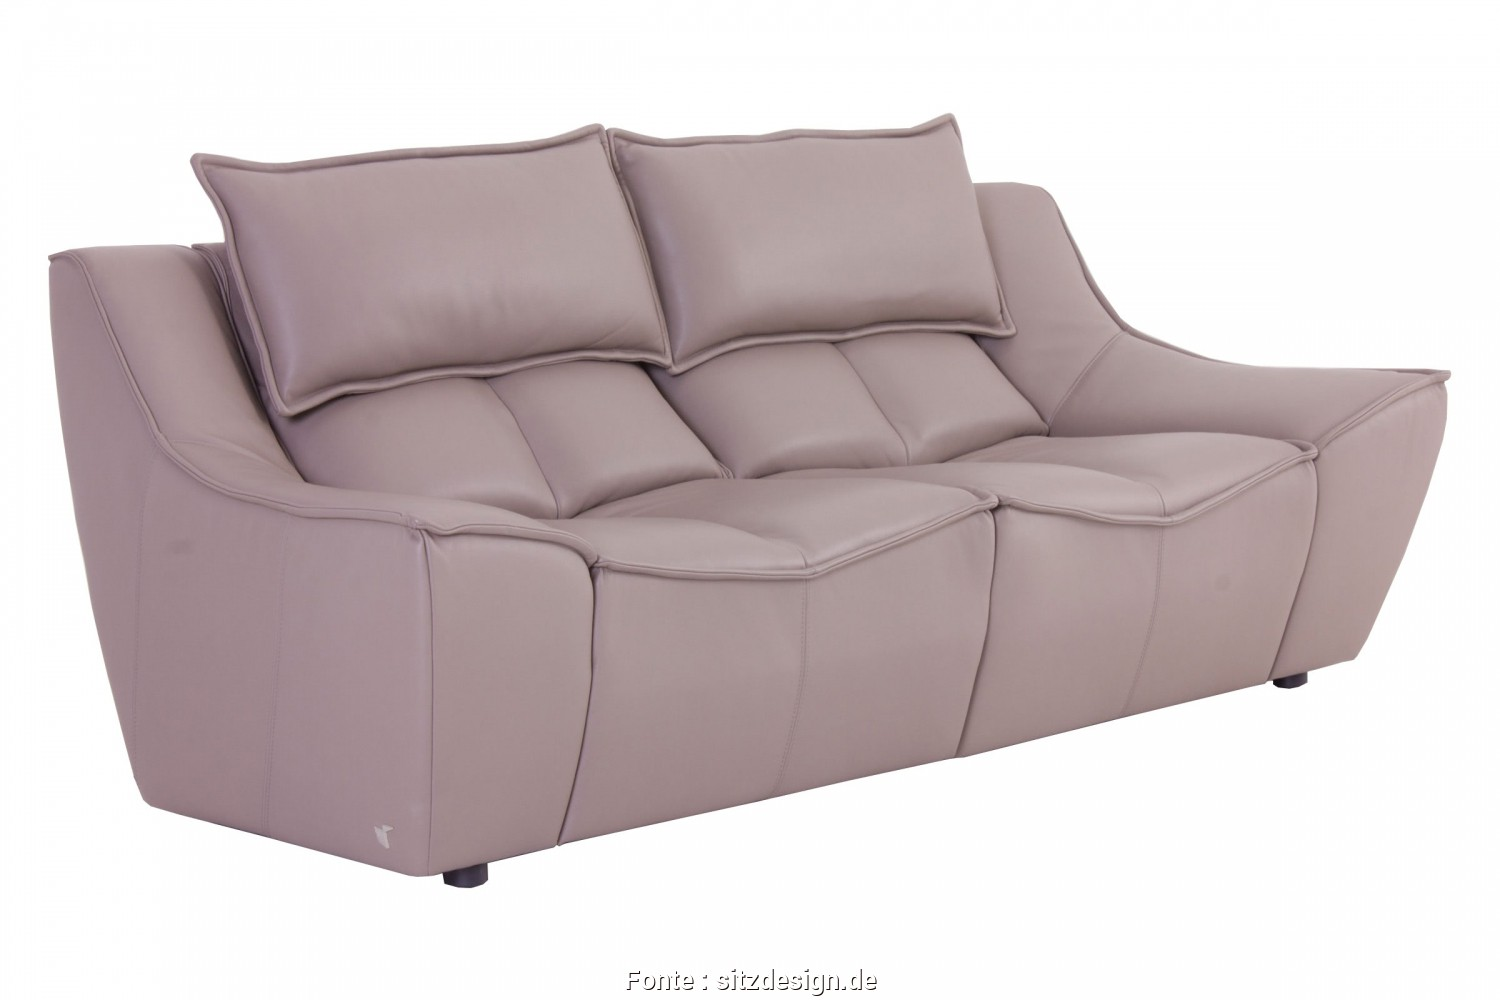 Hip, Sofa Calia Italia, Deale Calia Italia Sofa, HOP In Leder Suave Taupe